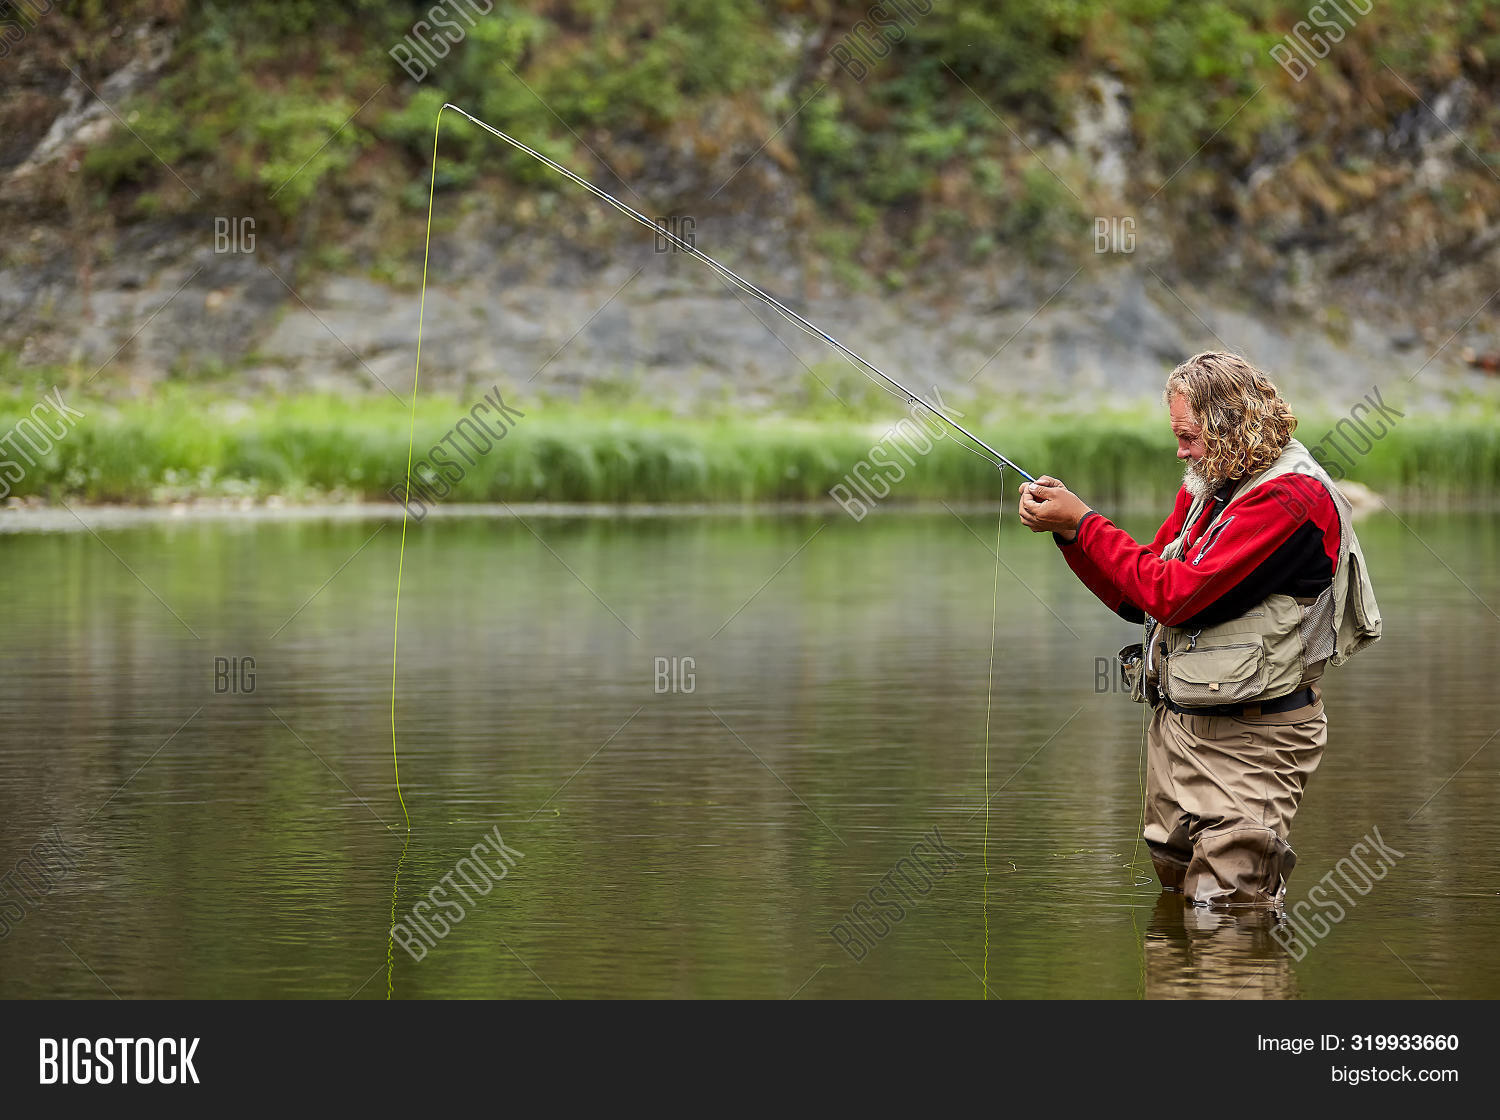 Fly Caster Angler Is Fishing In The Wild River Use Fly Casting Or Fly Fishing.